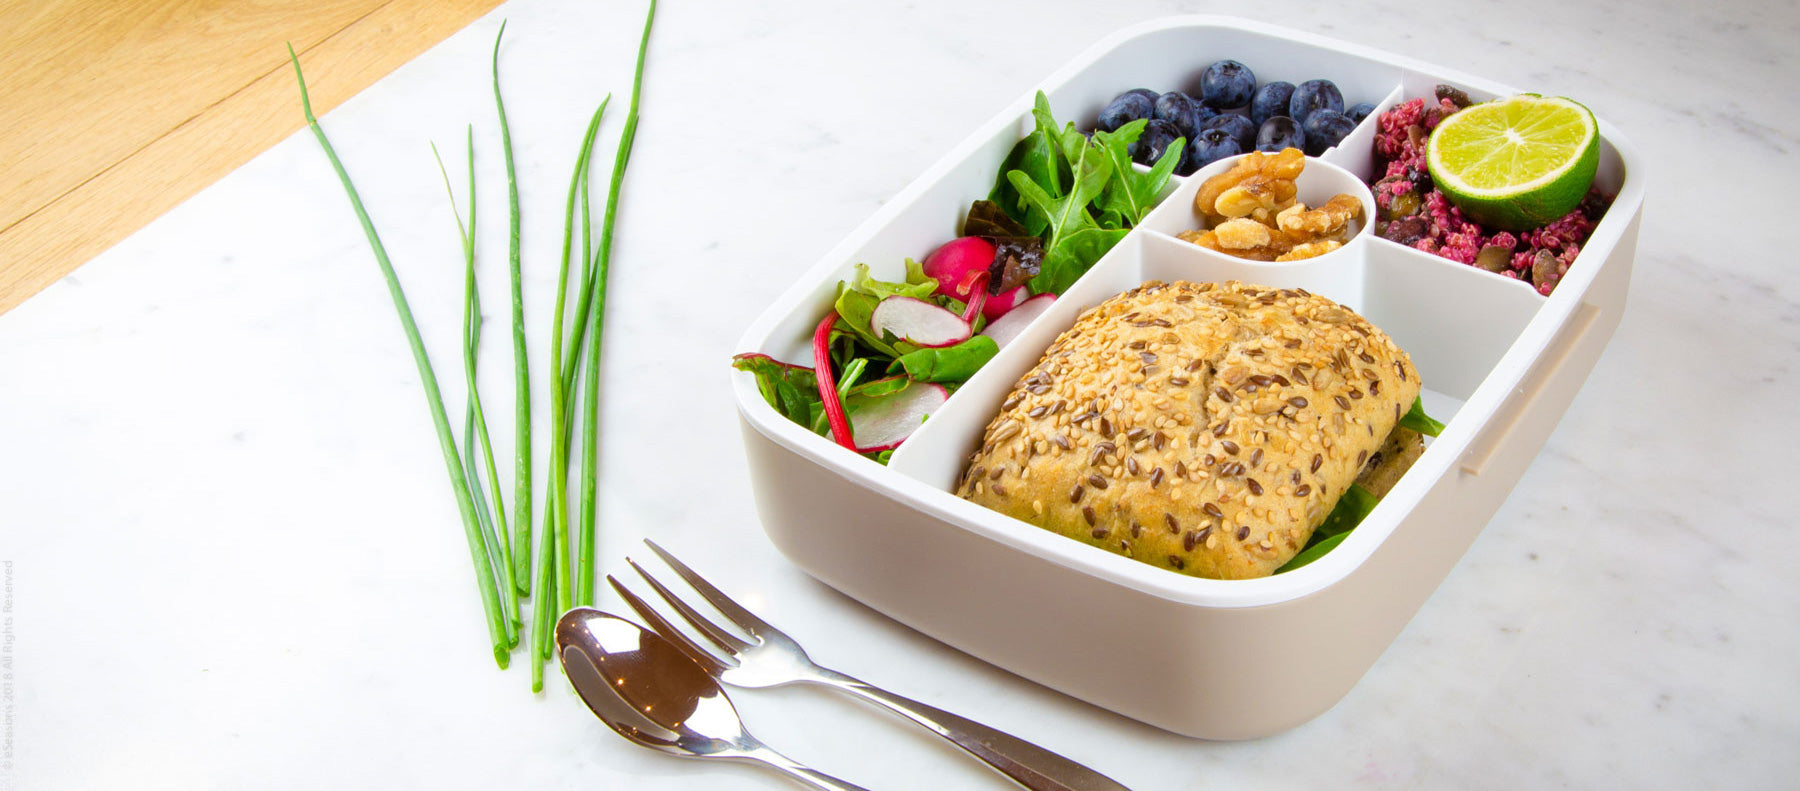 Gorgeous food photography: eSeasons Bento 5 compartment Lunchbox in Warm Grey with appetizing lunch of salad, blueberries, and sandwich